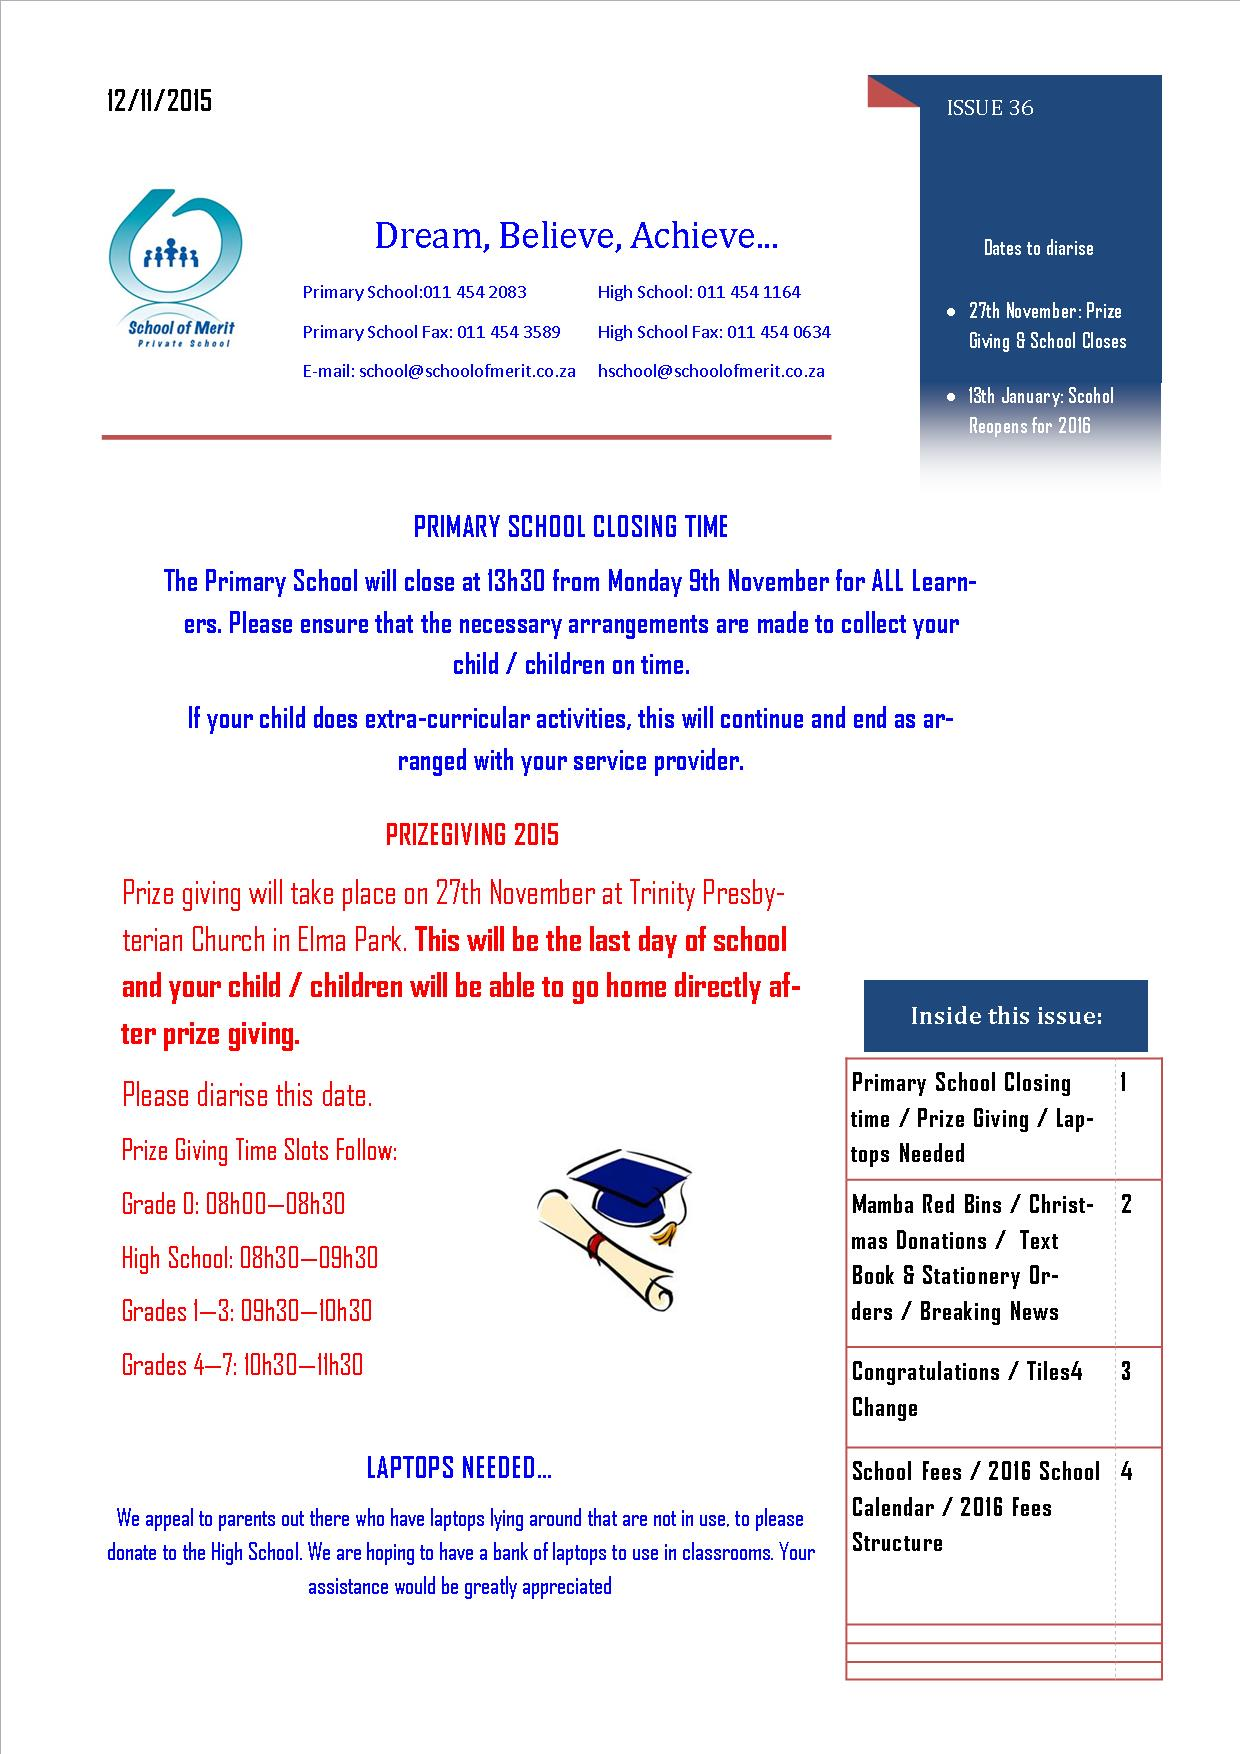 Newsletter 36 Page 1